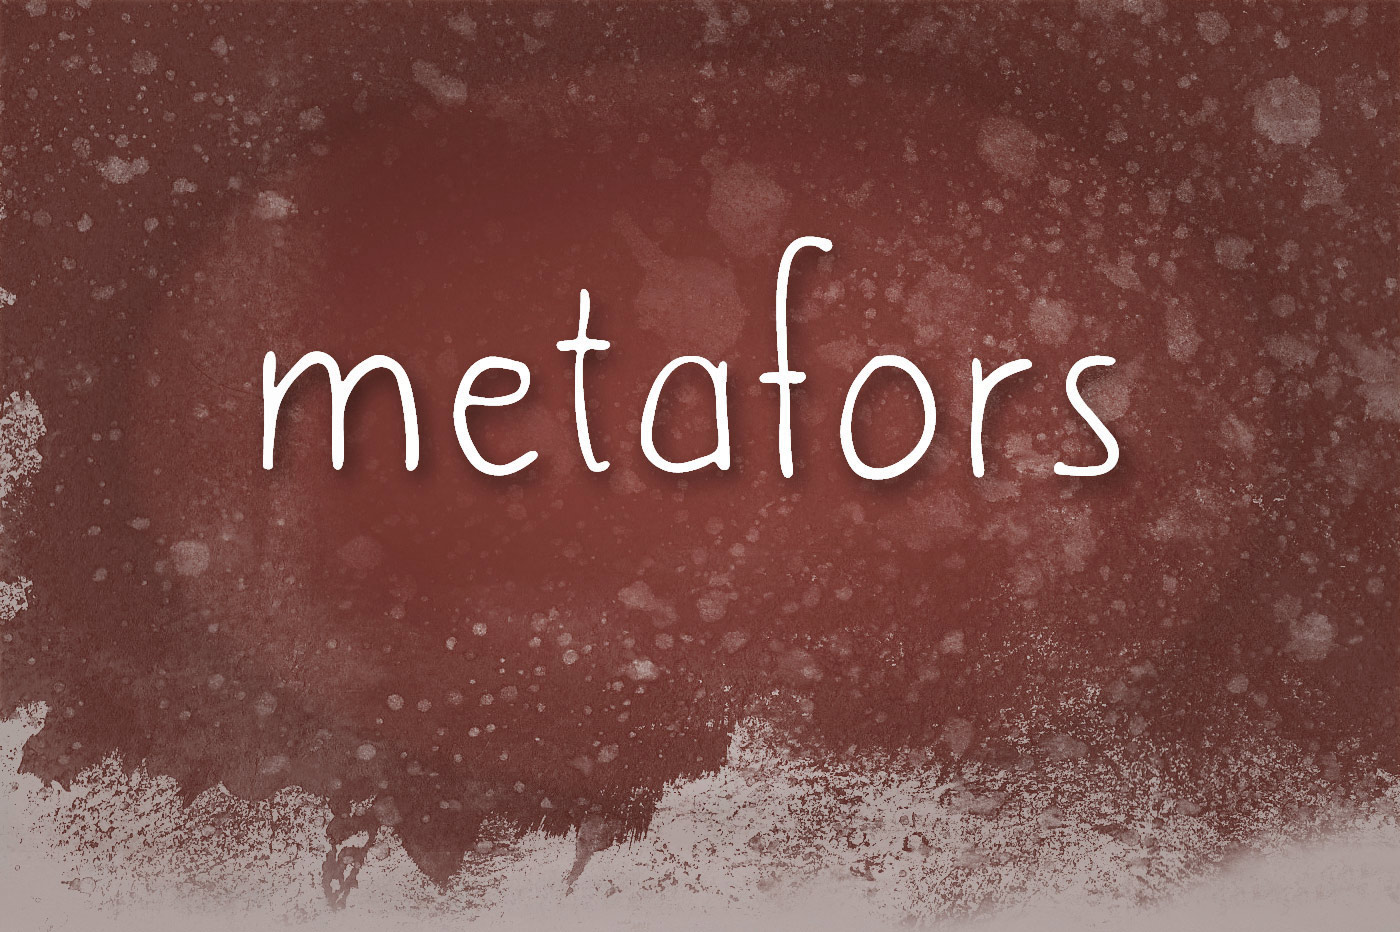 Cute Hand Writing Font - Metafors